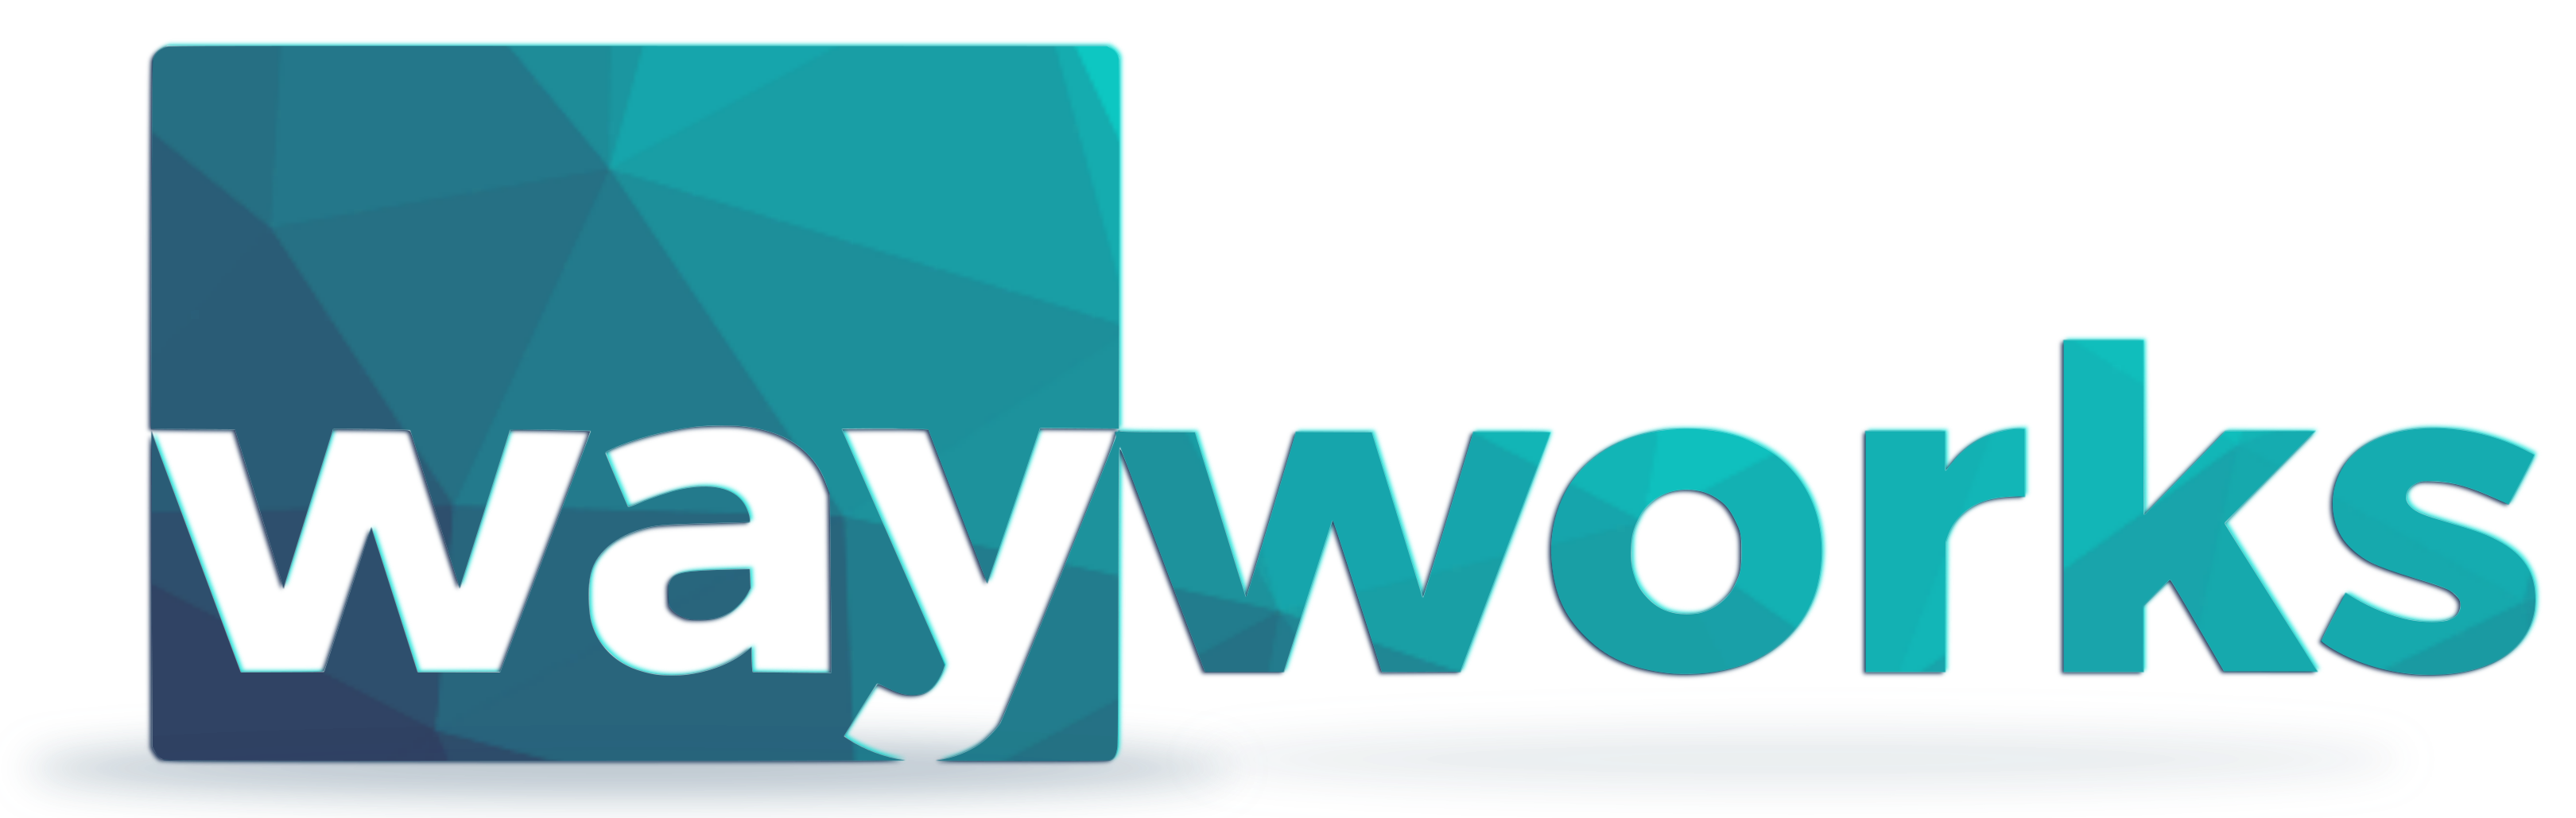 Wayworks Development | Web Design | Digital Marketing